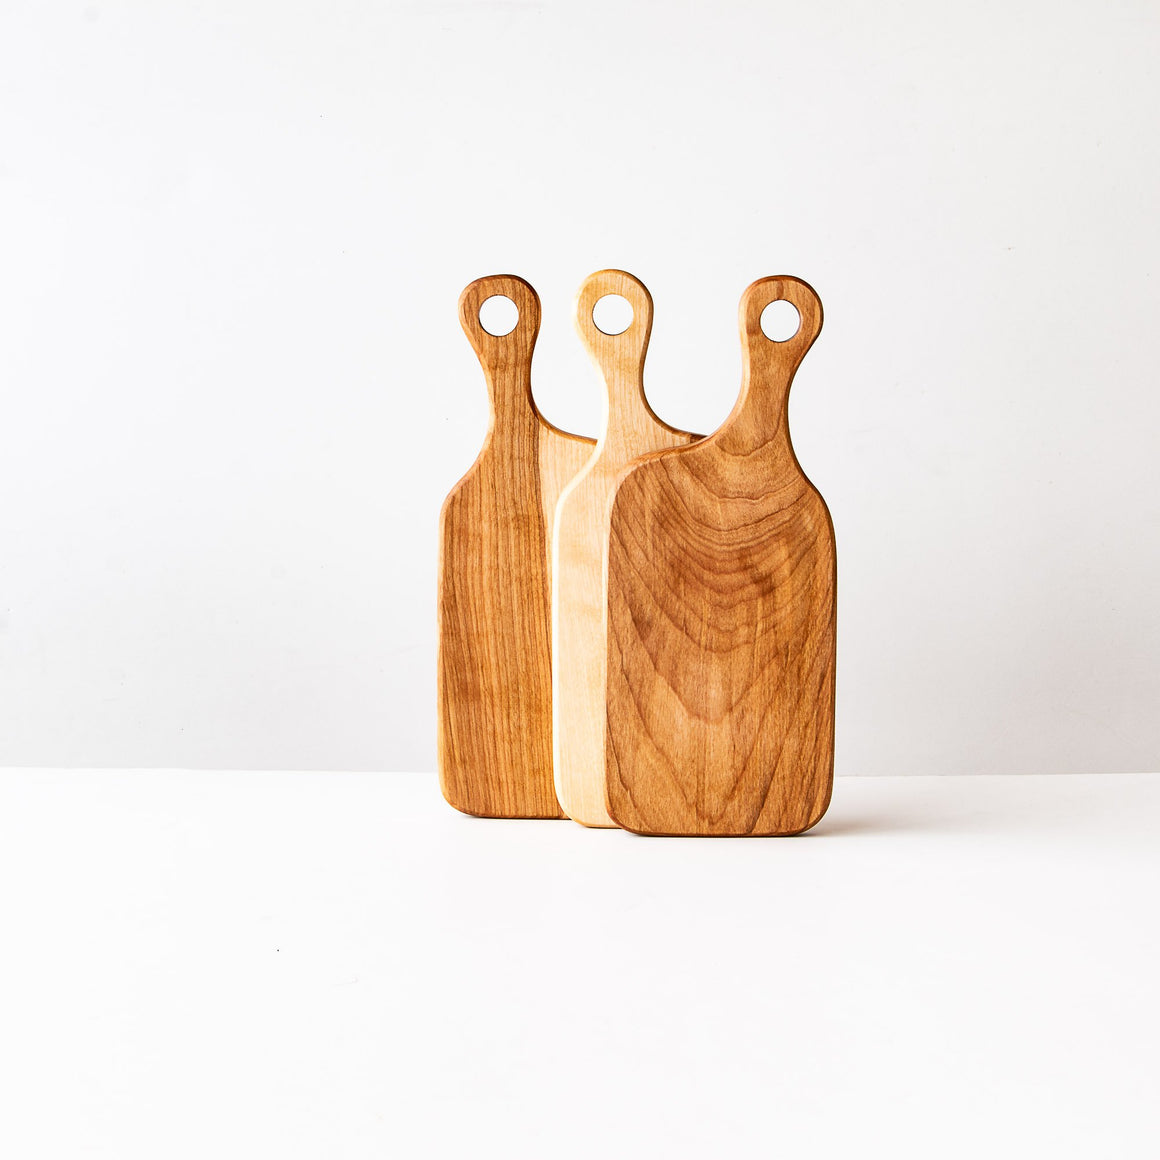 Muskoka N°1 - Handmade Cutting Board in Birch - Sold by Chic & Basta